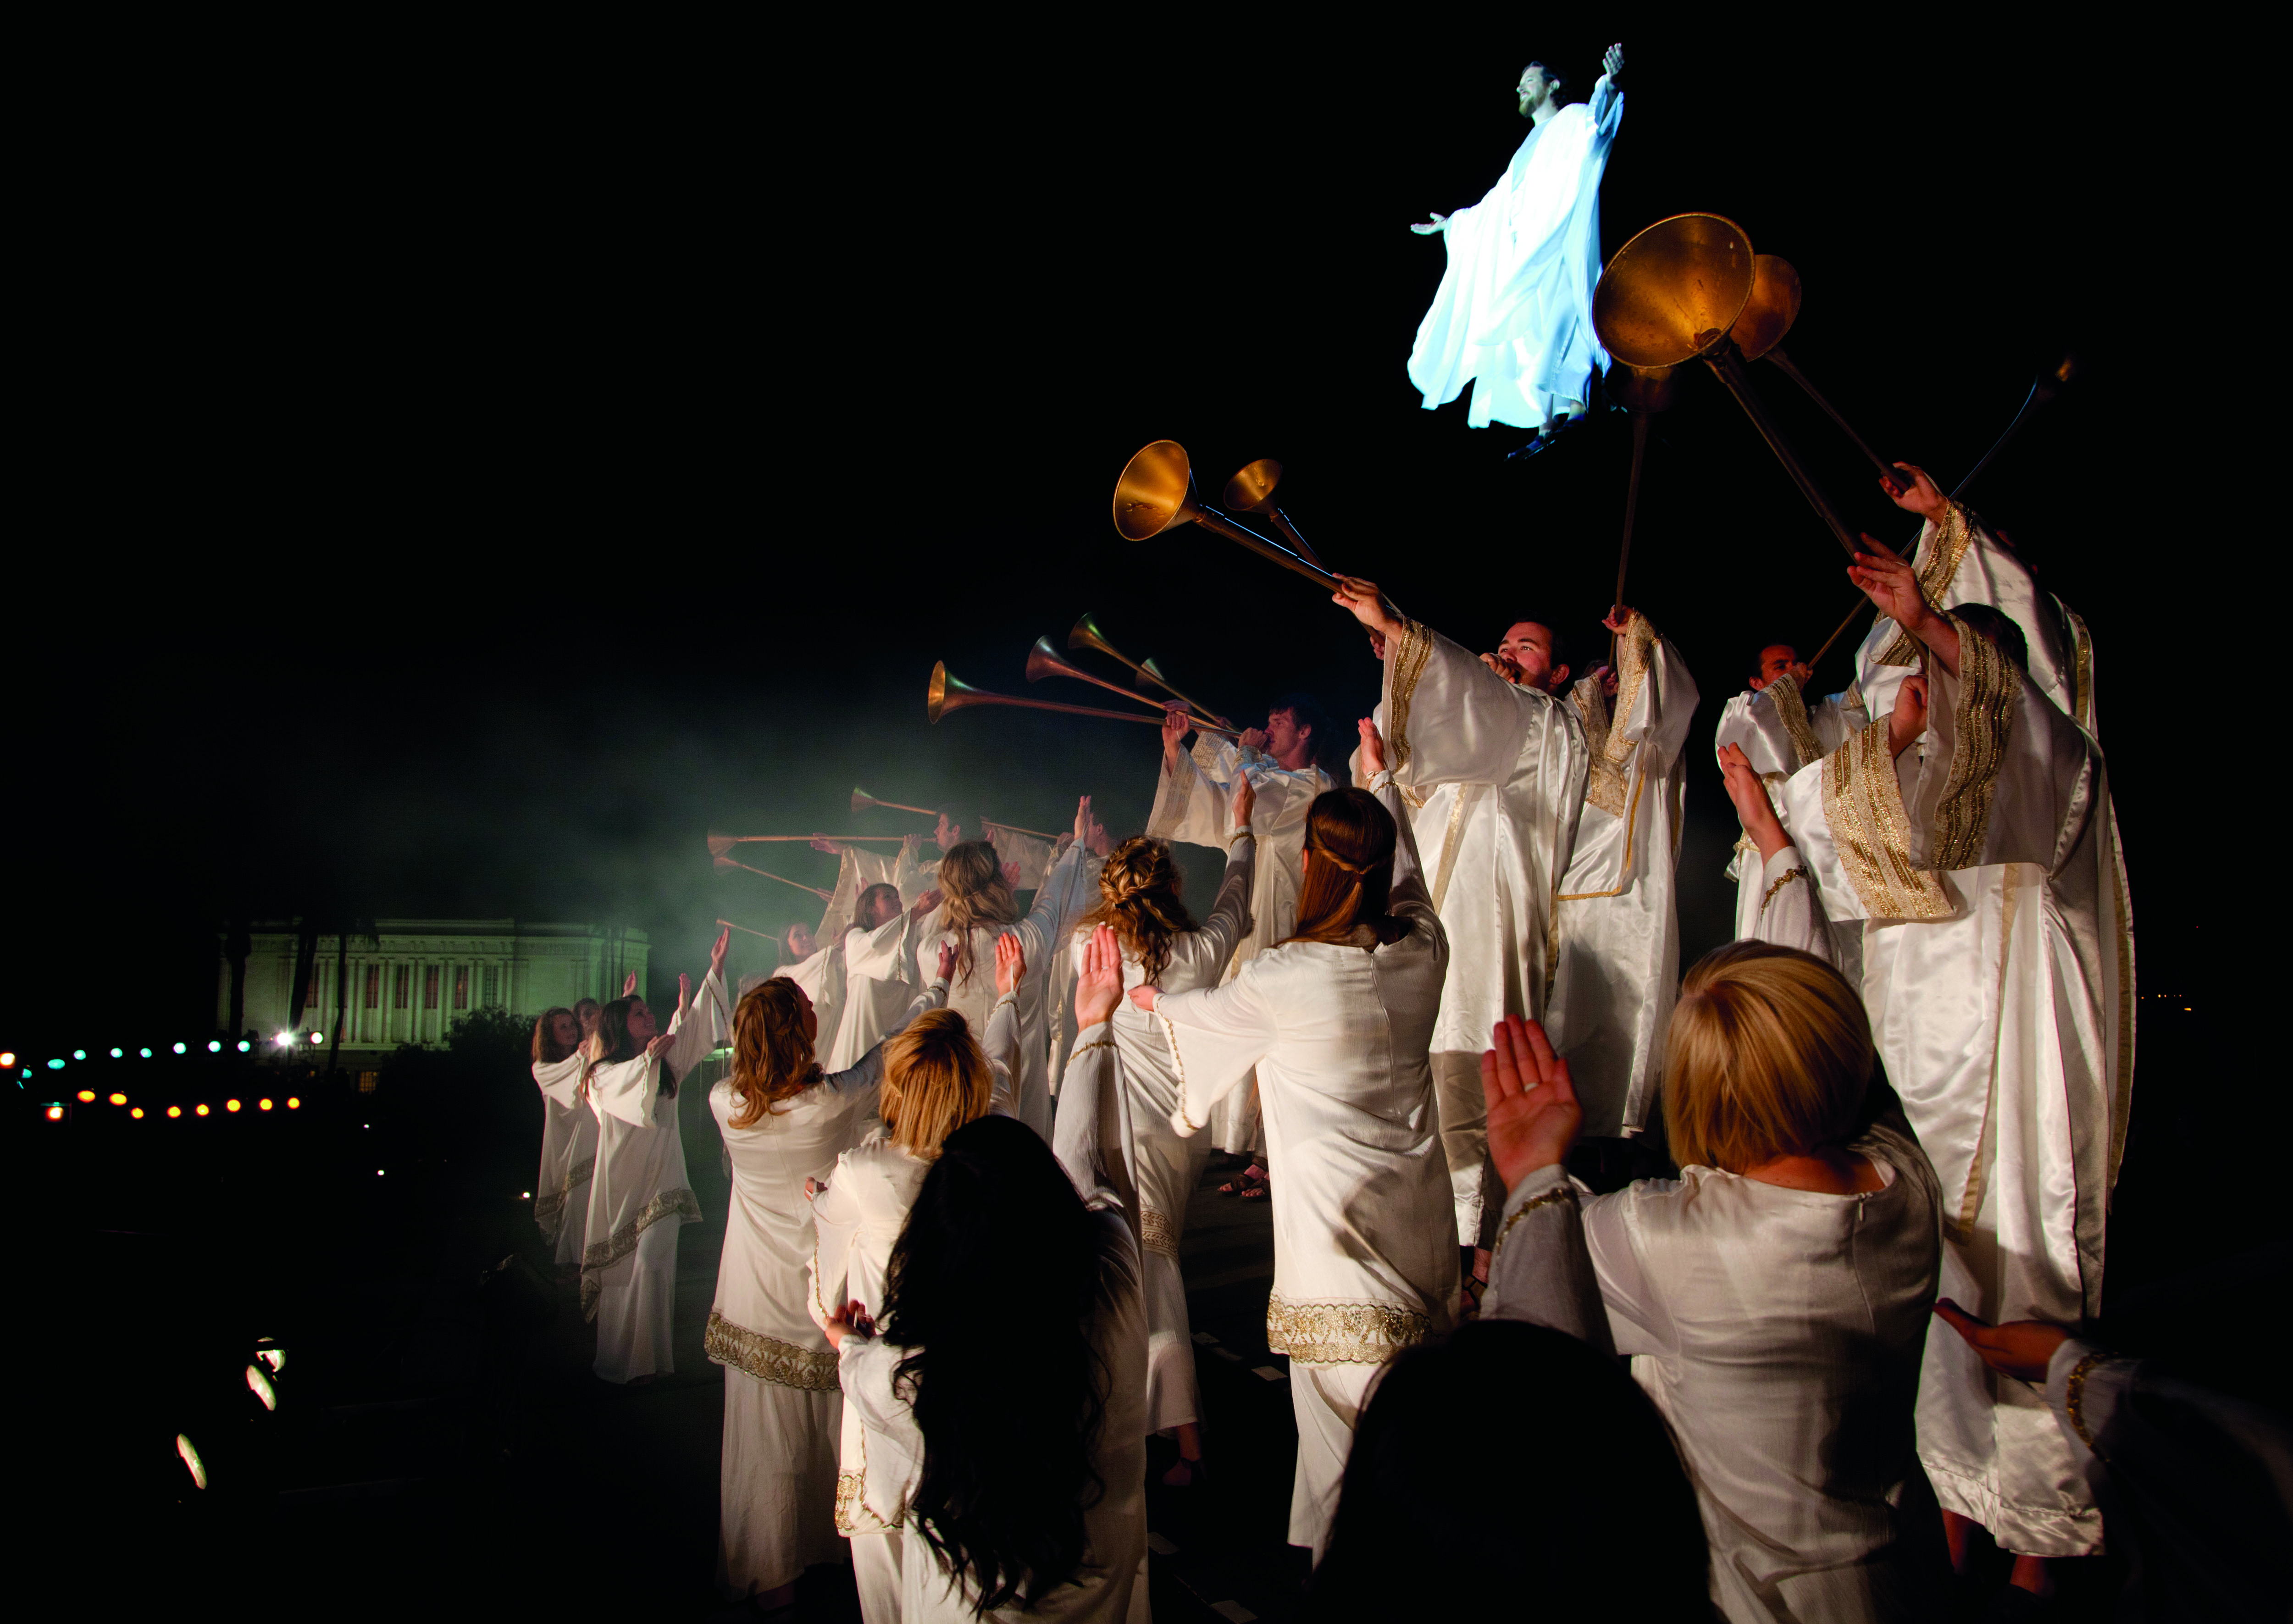 The Mesa Easter Pageant tells the story of Jesus Christ's birth, ministry, death and miraculous Resurrection through music, dance and drama.